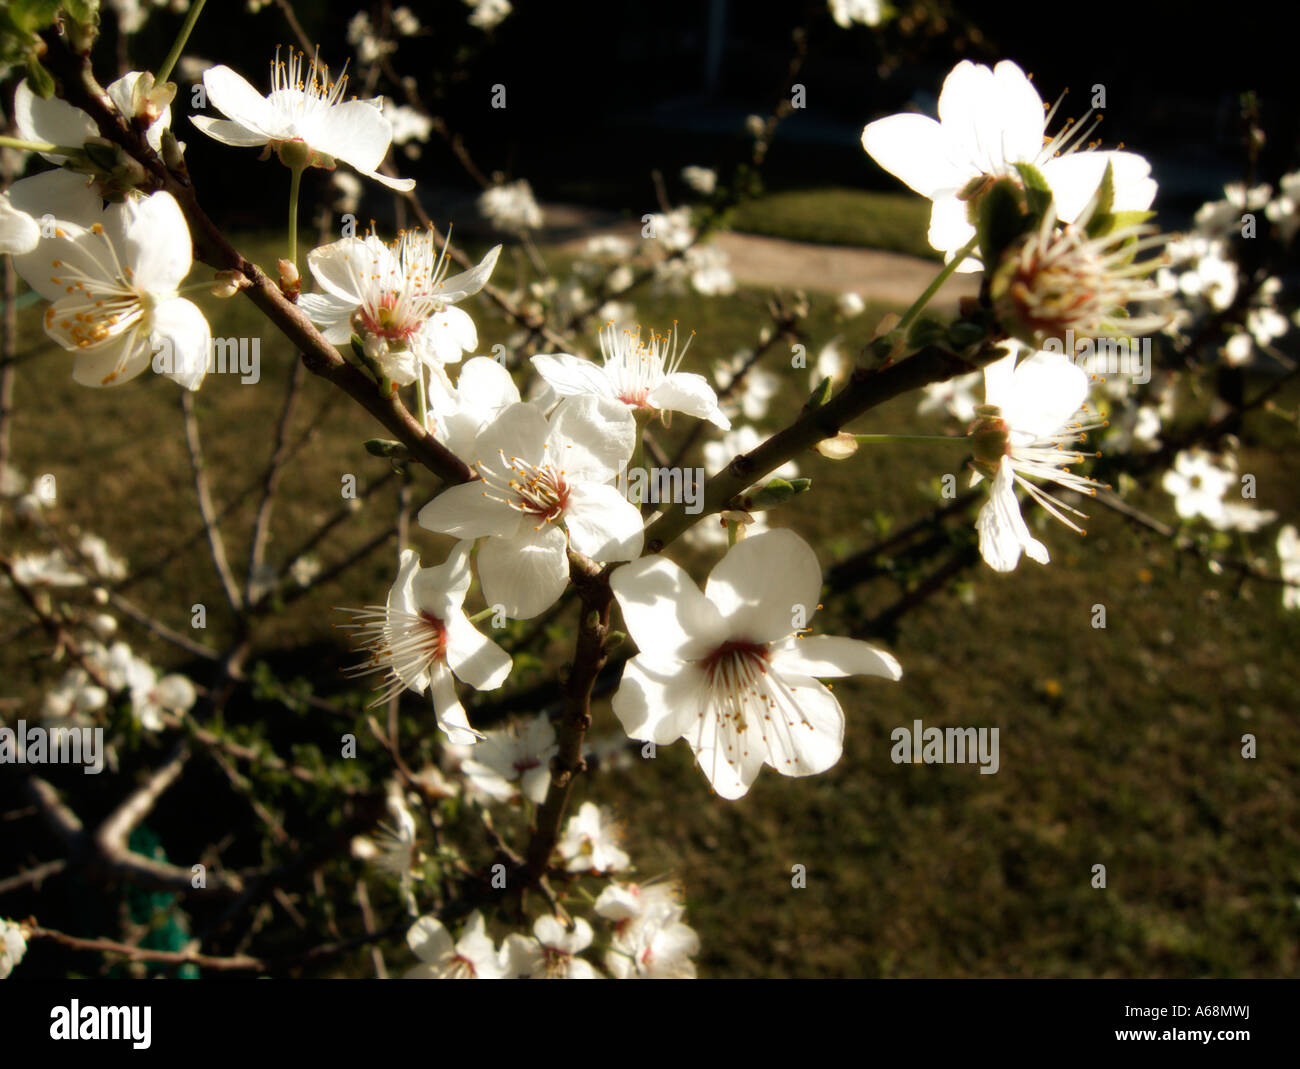 First plum blossoms of the season. Valencia. Spain. Stock Photo